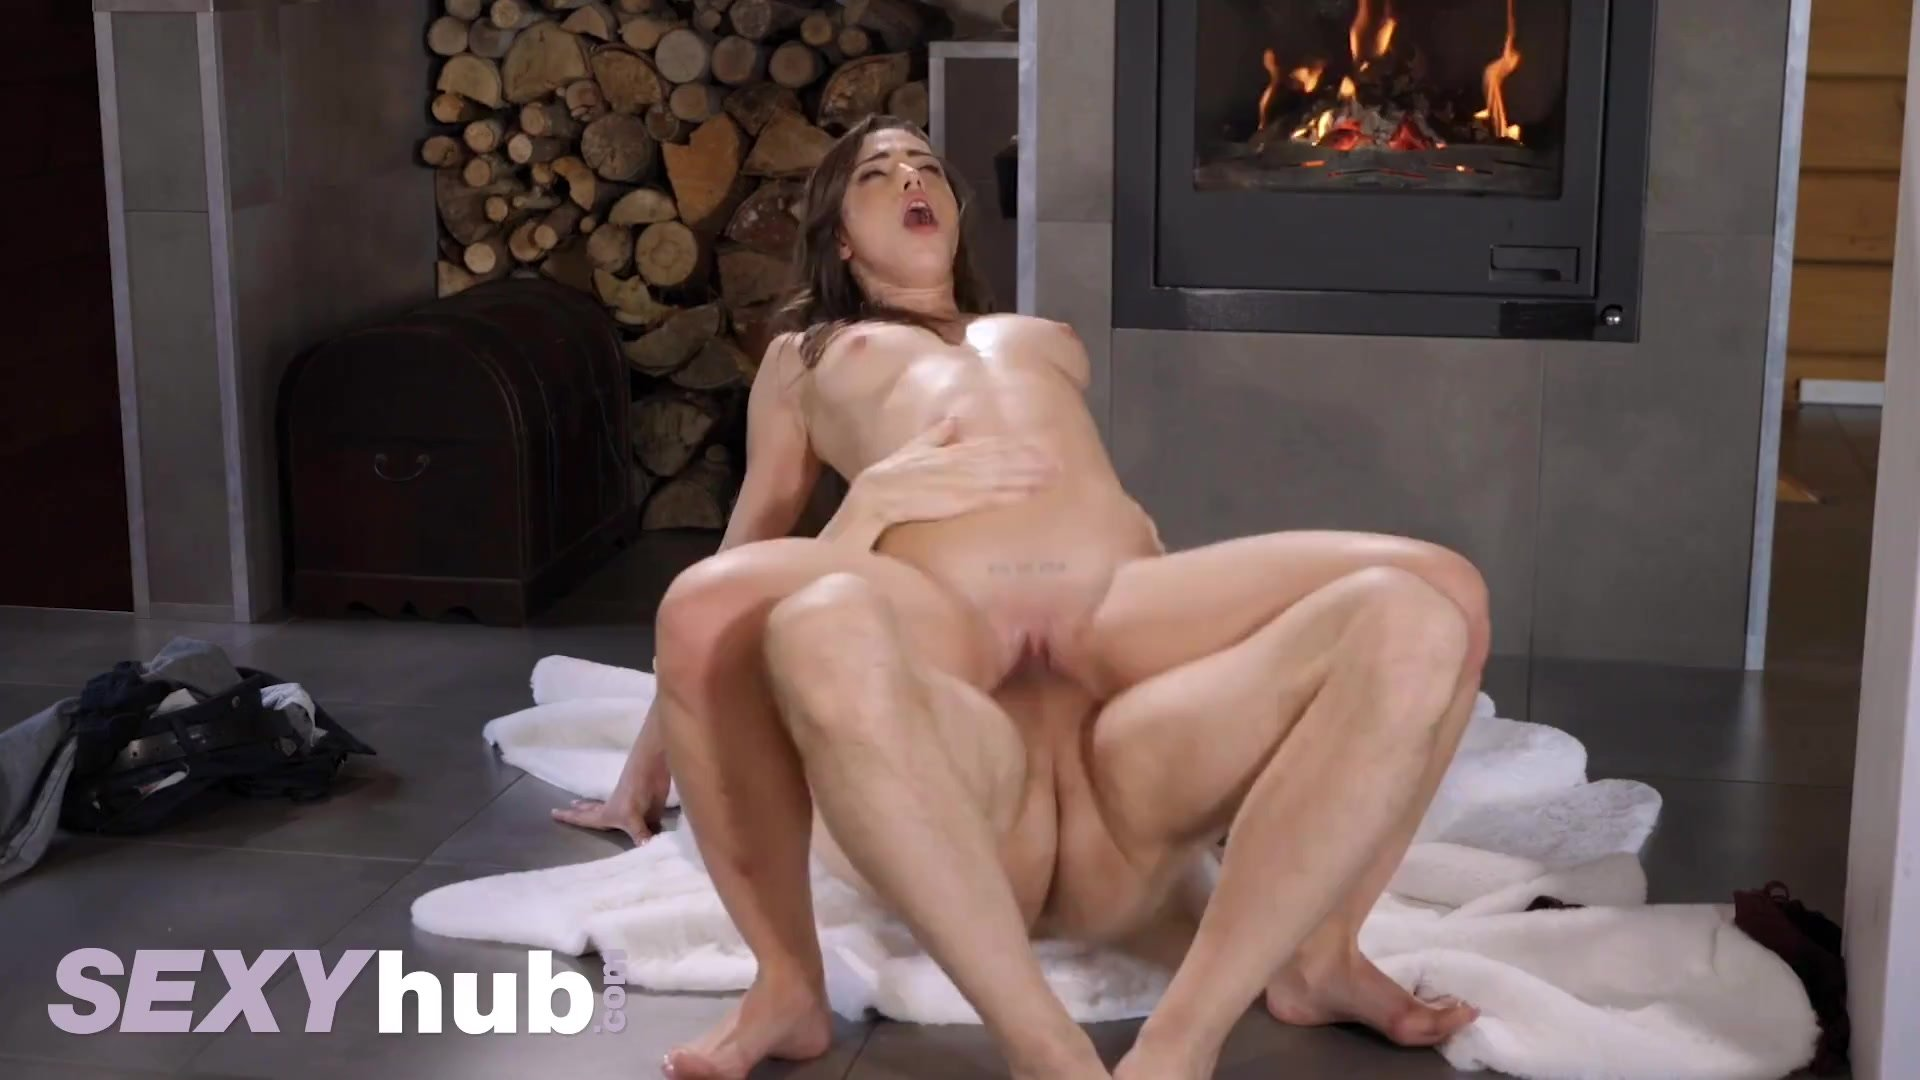 SEXYhub epic TRY NO TO CUM challenge part one romantic sex and orgasm compilation